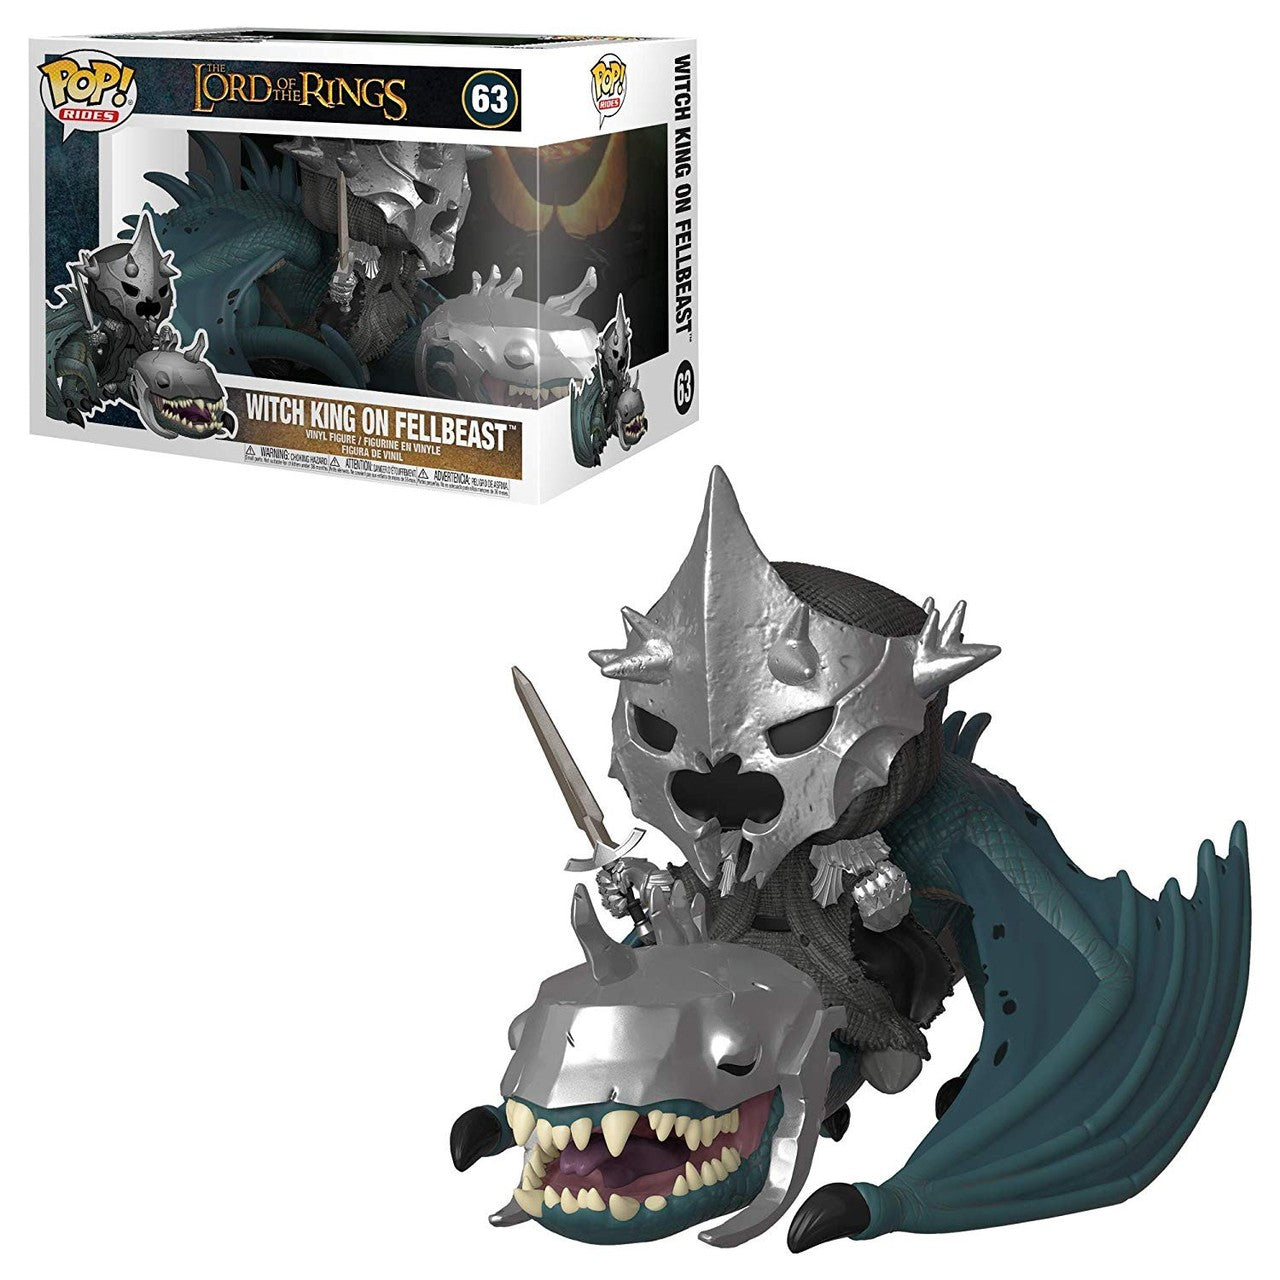 Lord of the Rings Pop! Rides Witch King with Fellbeast [63] - Fugitive Toys